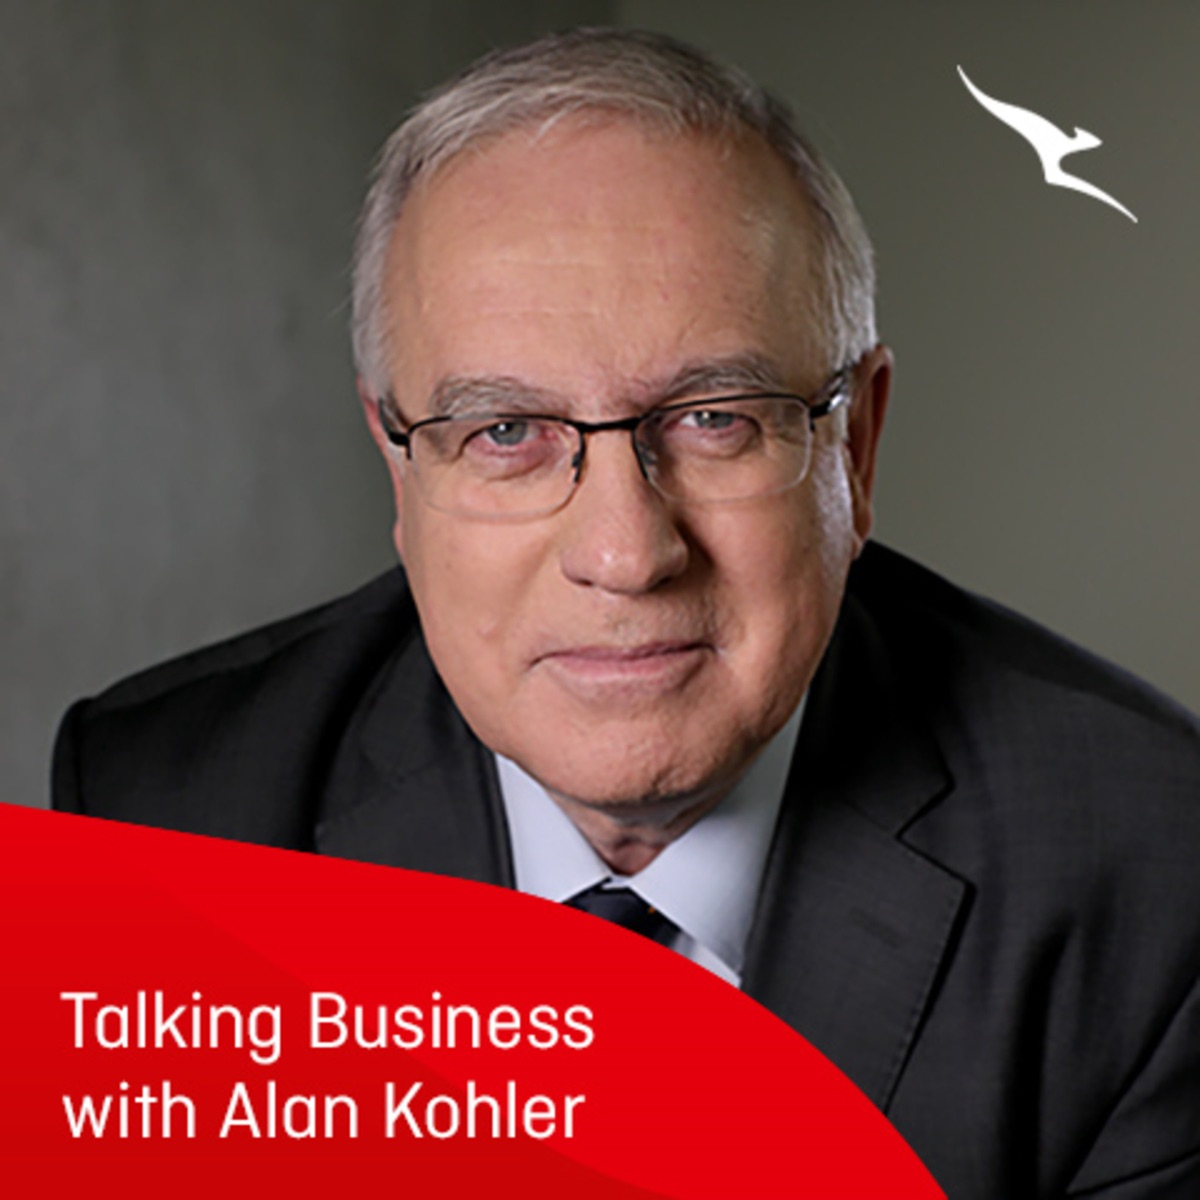 Talking Business with Alan Kohler